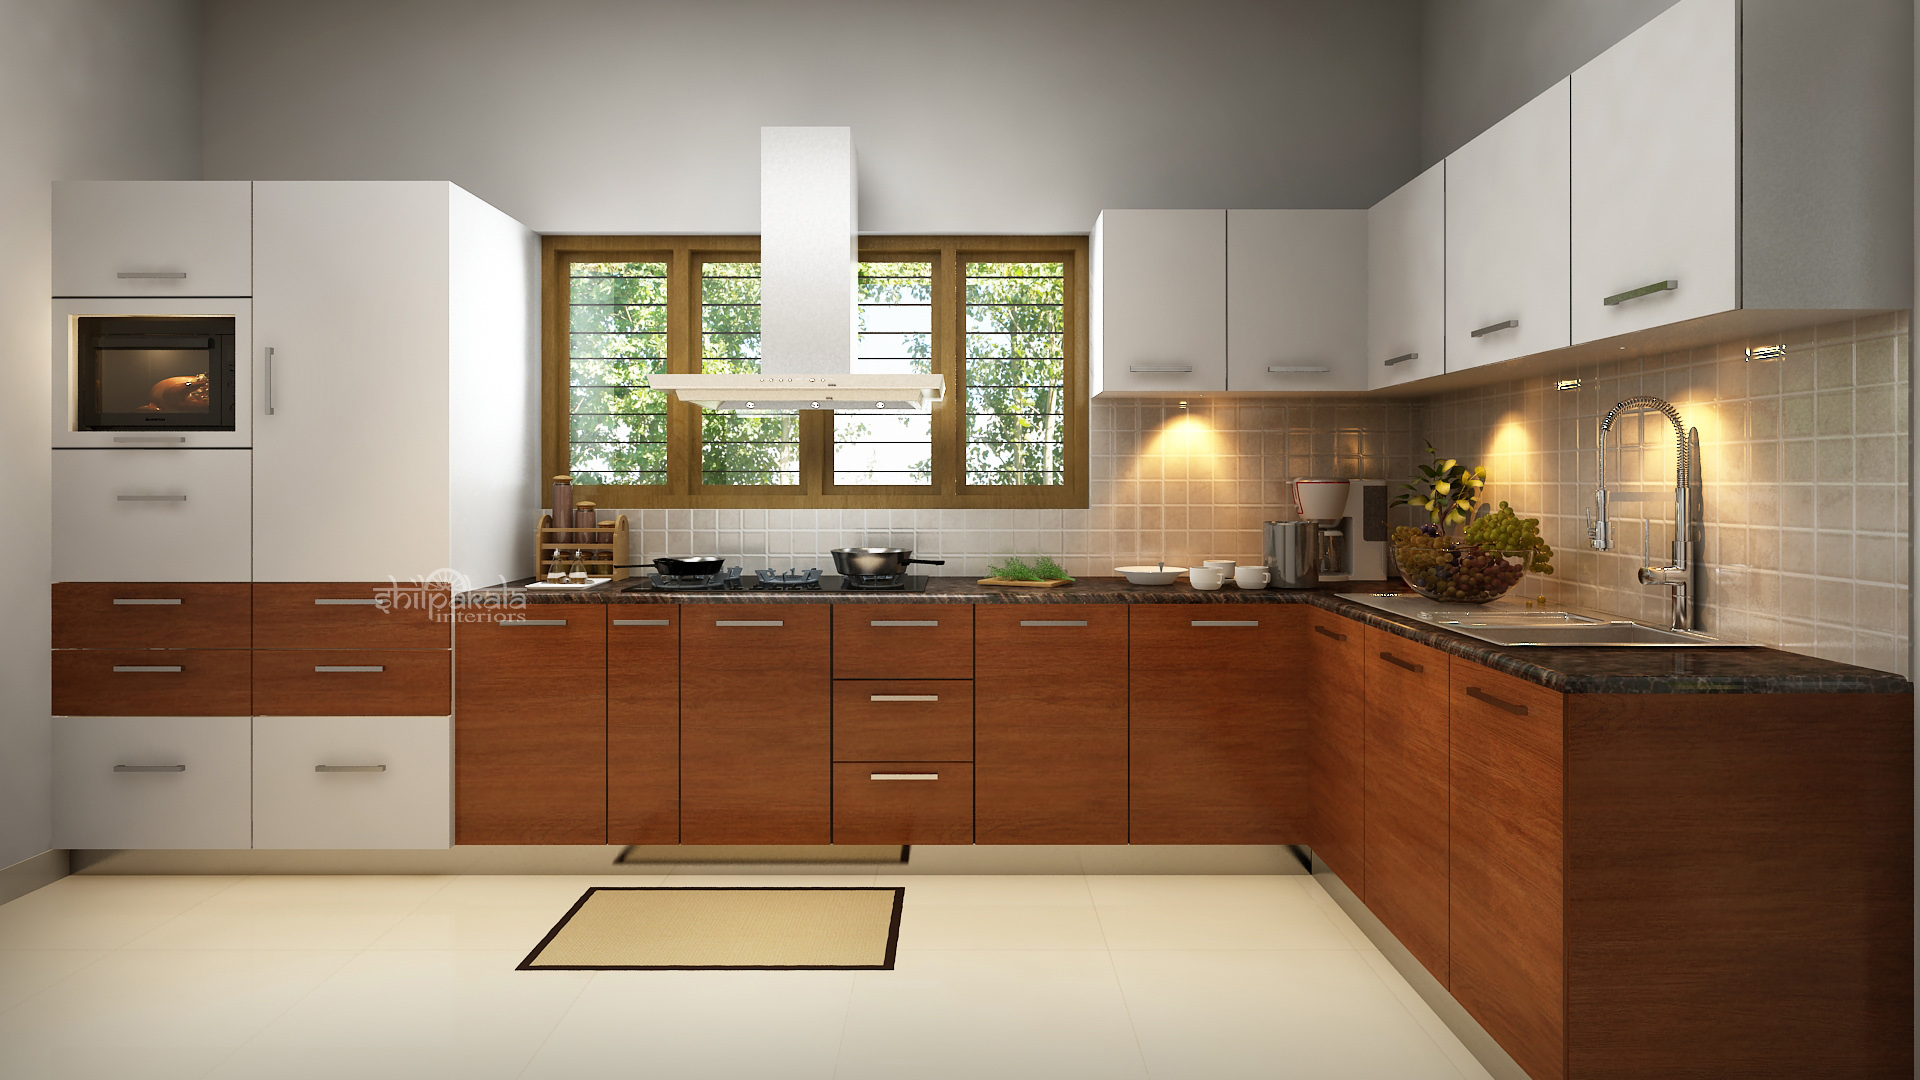 kitchen interior design kerala kitchen interior design images gallery 8355